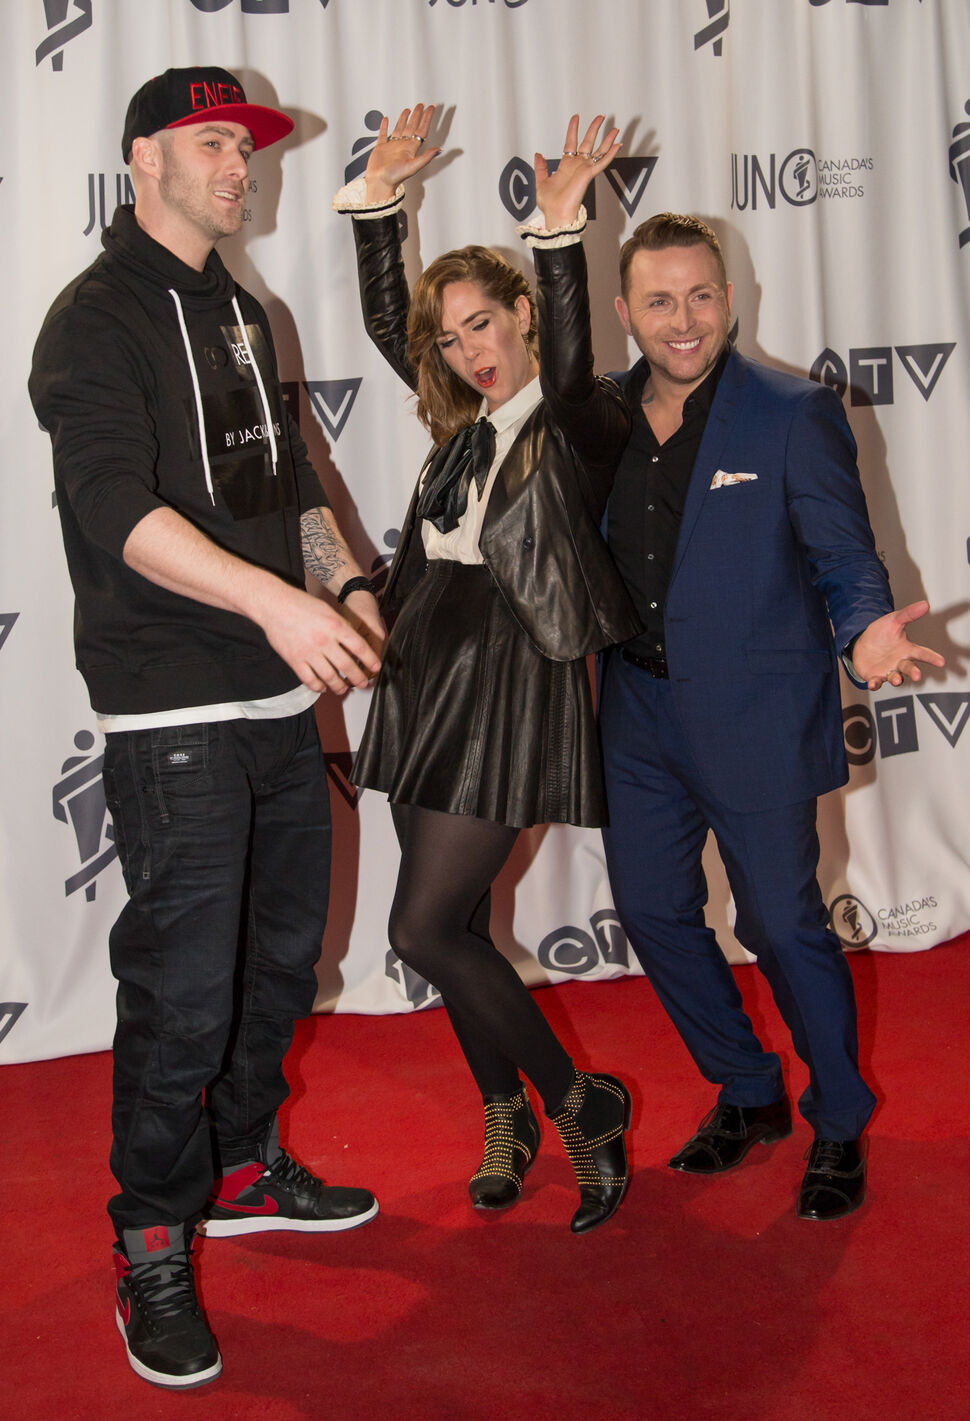 Co-hosts Classified, Serena Ryder, Johnny Reid at the 2014 JUNO awards at the MTS Centre in Winnipeg on Sunday, March 30, 2014. PUTMOREINFOHERE. (Photo by Crystal Schick/Winnipeg Free Press) (Crystal Schick / Winnipeg Free Press)